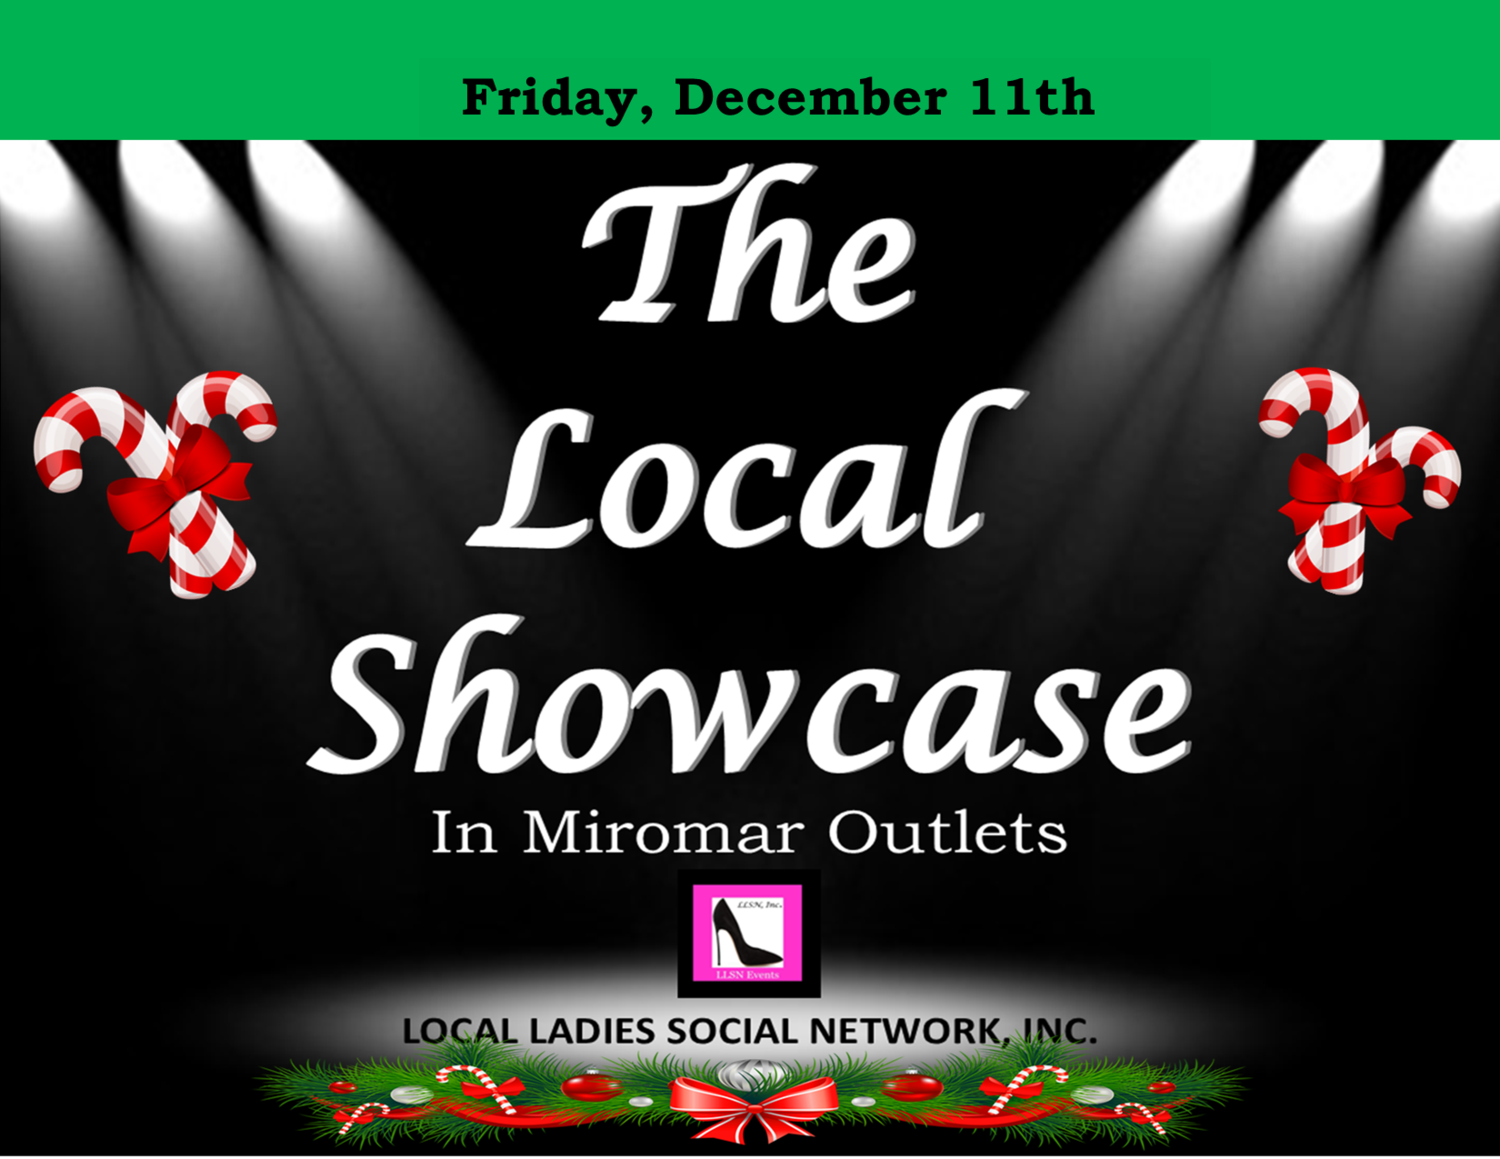 Friday, December 11th 11am-7pm